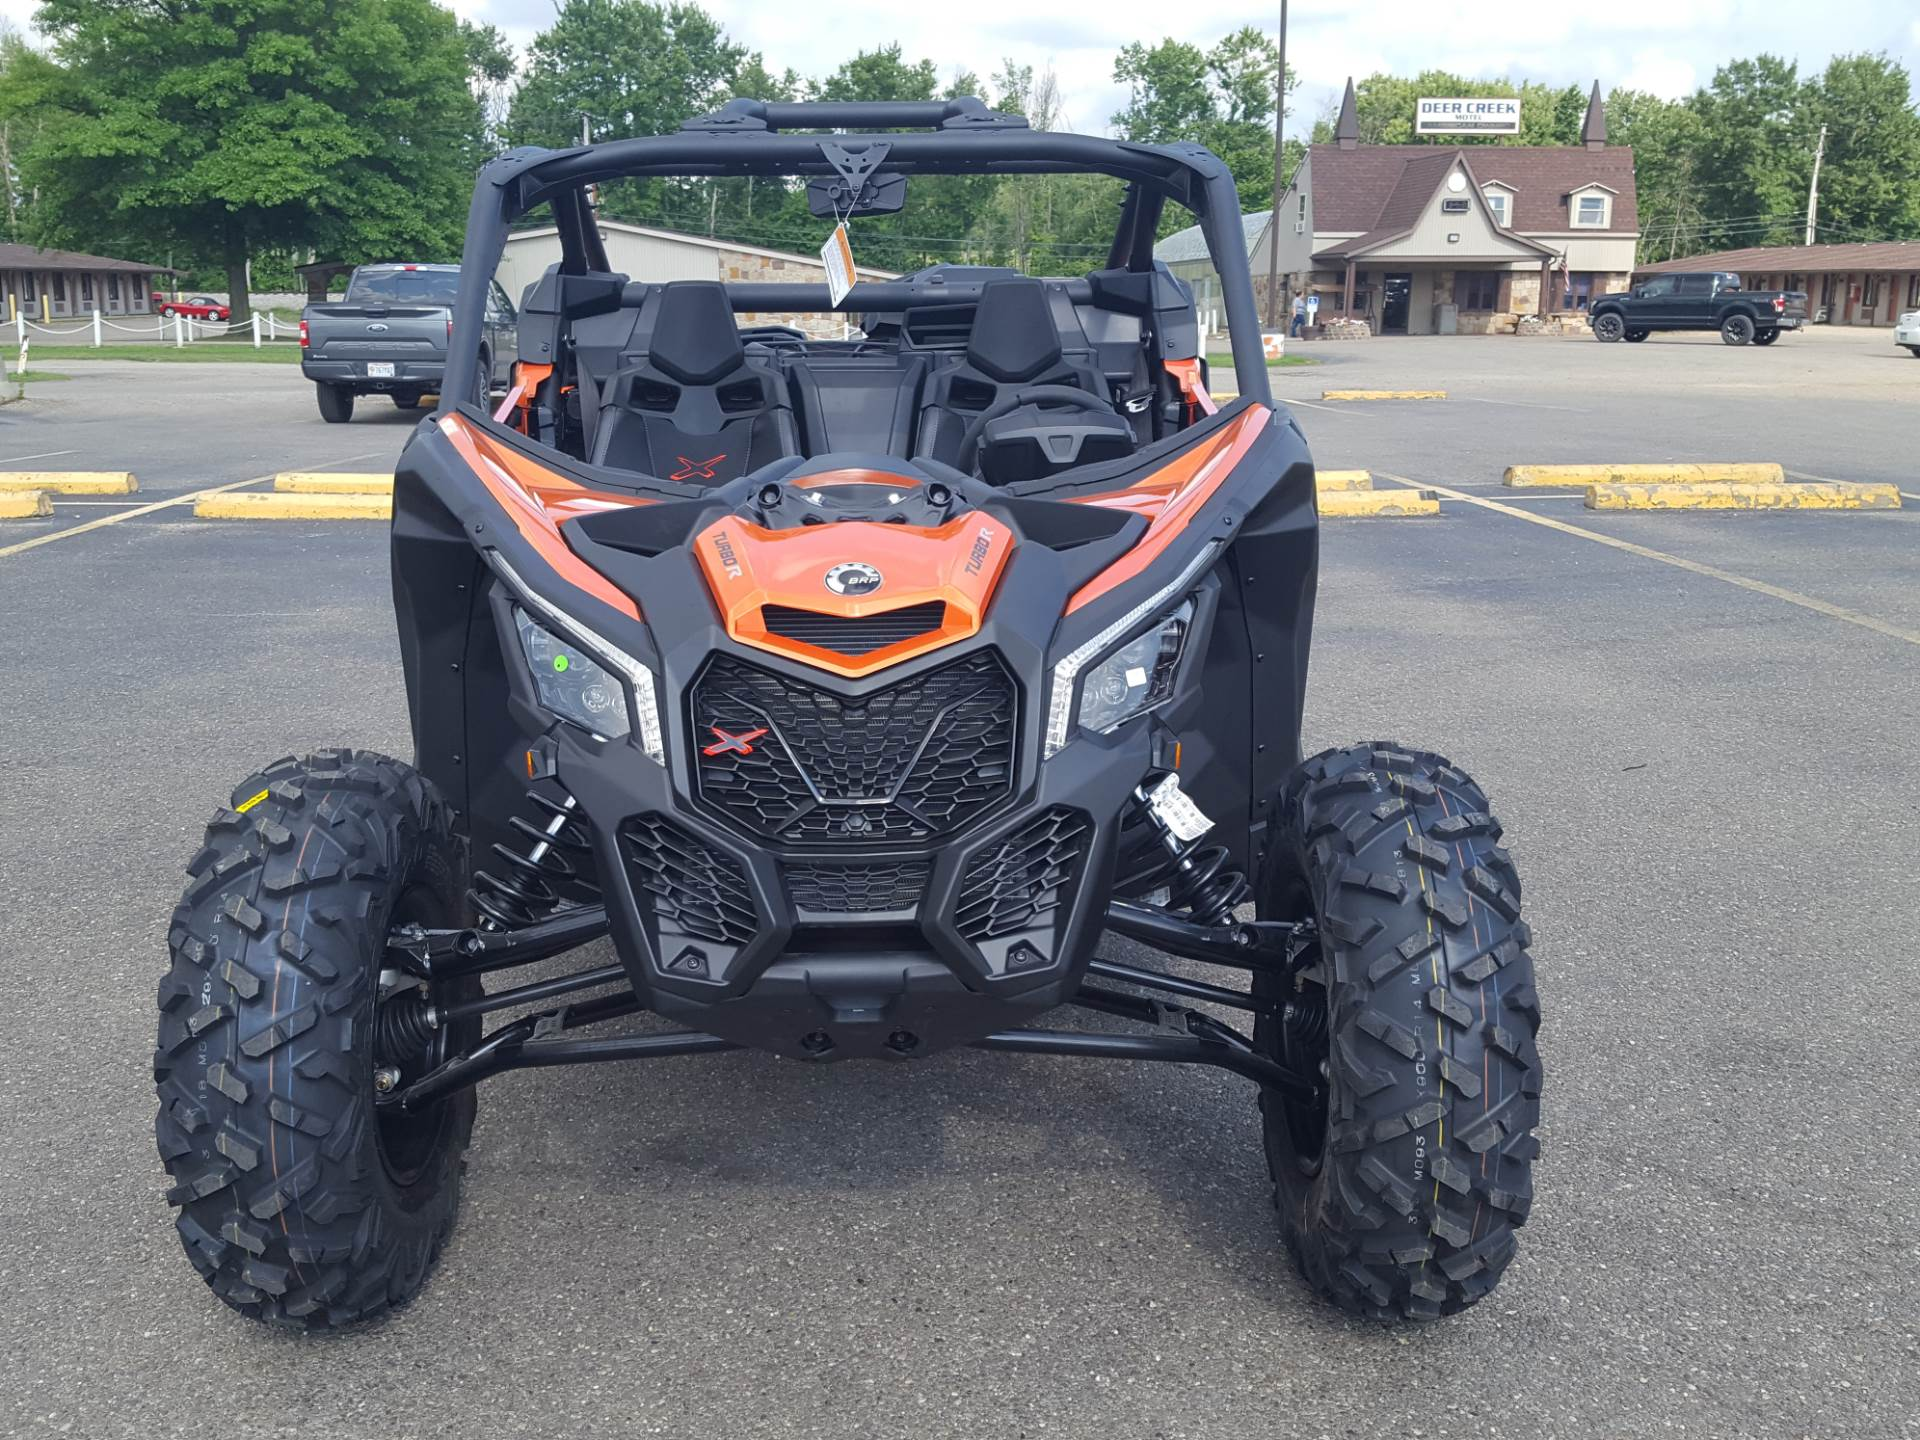 2019 Can-Am Maverick X3 X ds Turbo R in Cambridge, Ohio - Photo 3